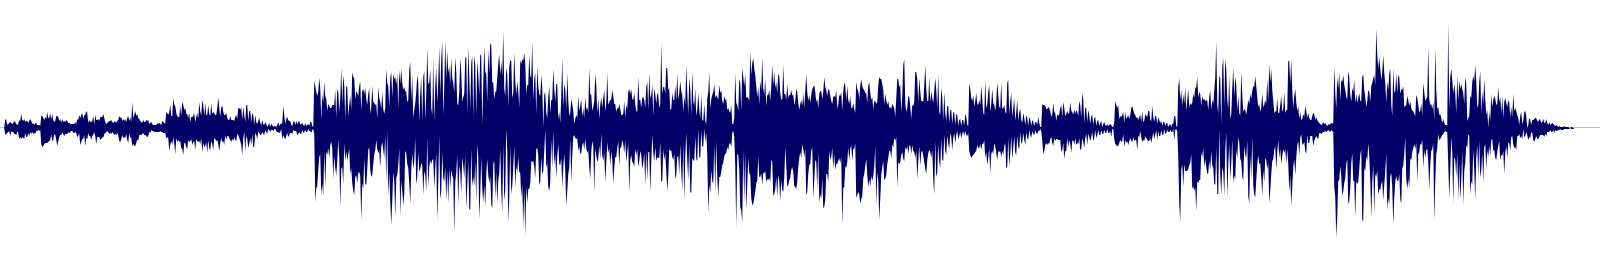 waveform of track #124385